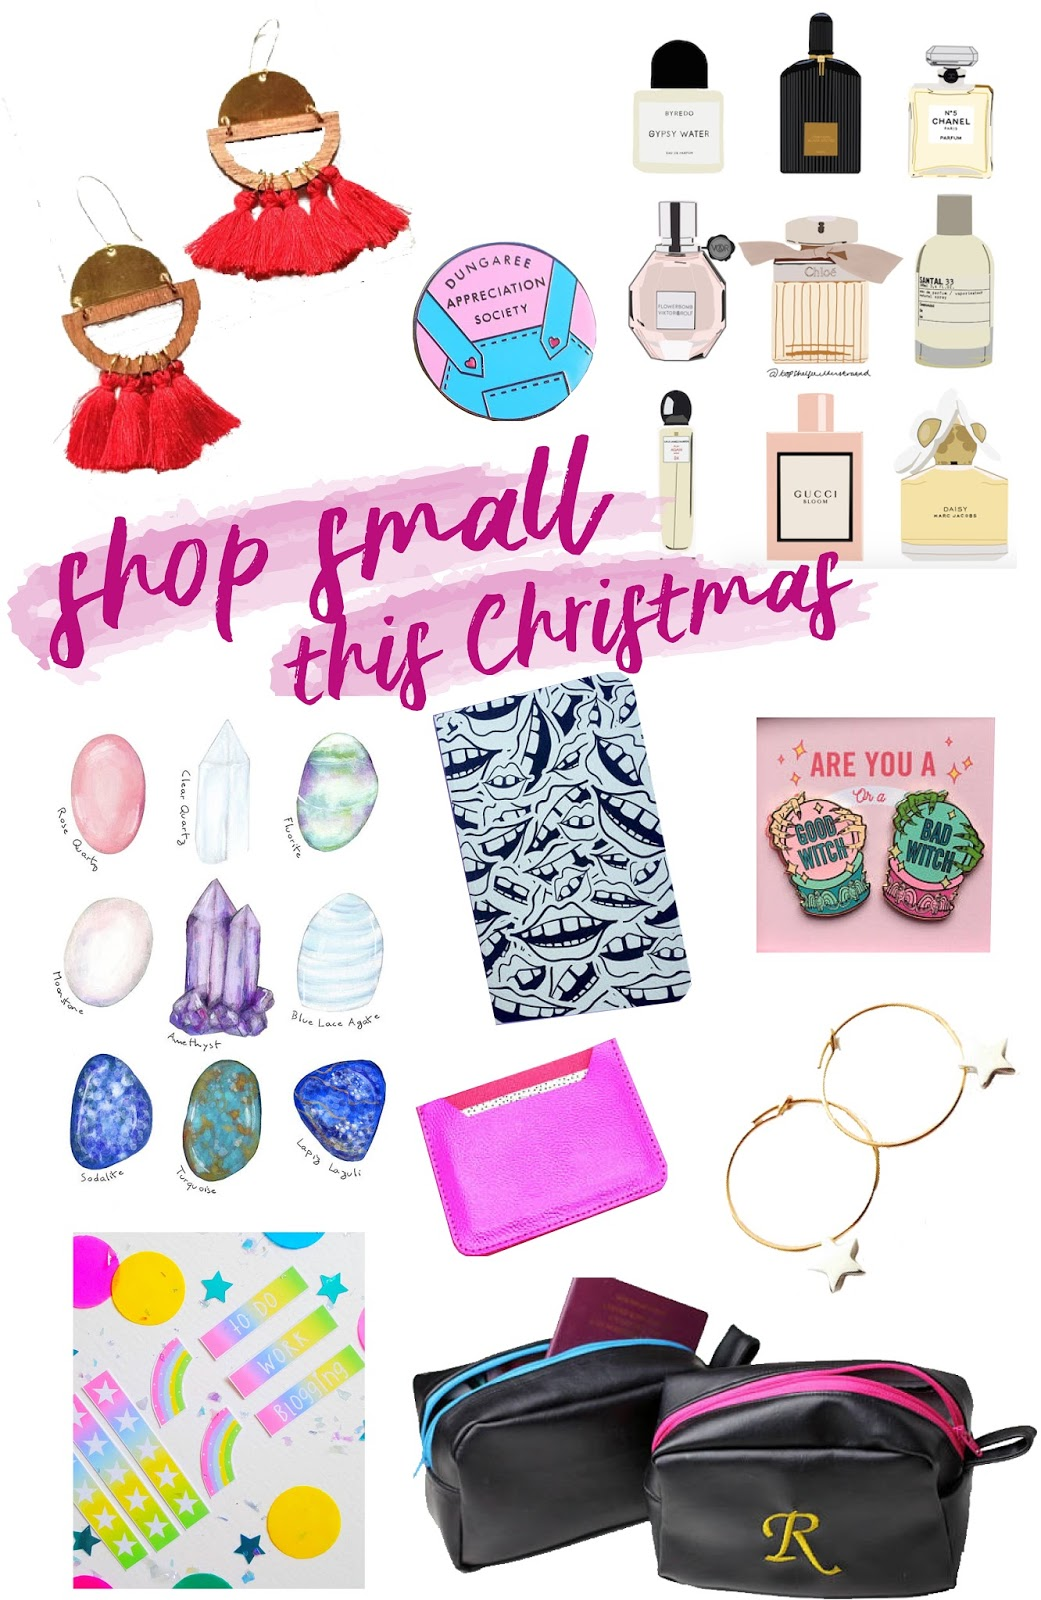 shop small Christmas gift guide 2017